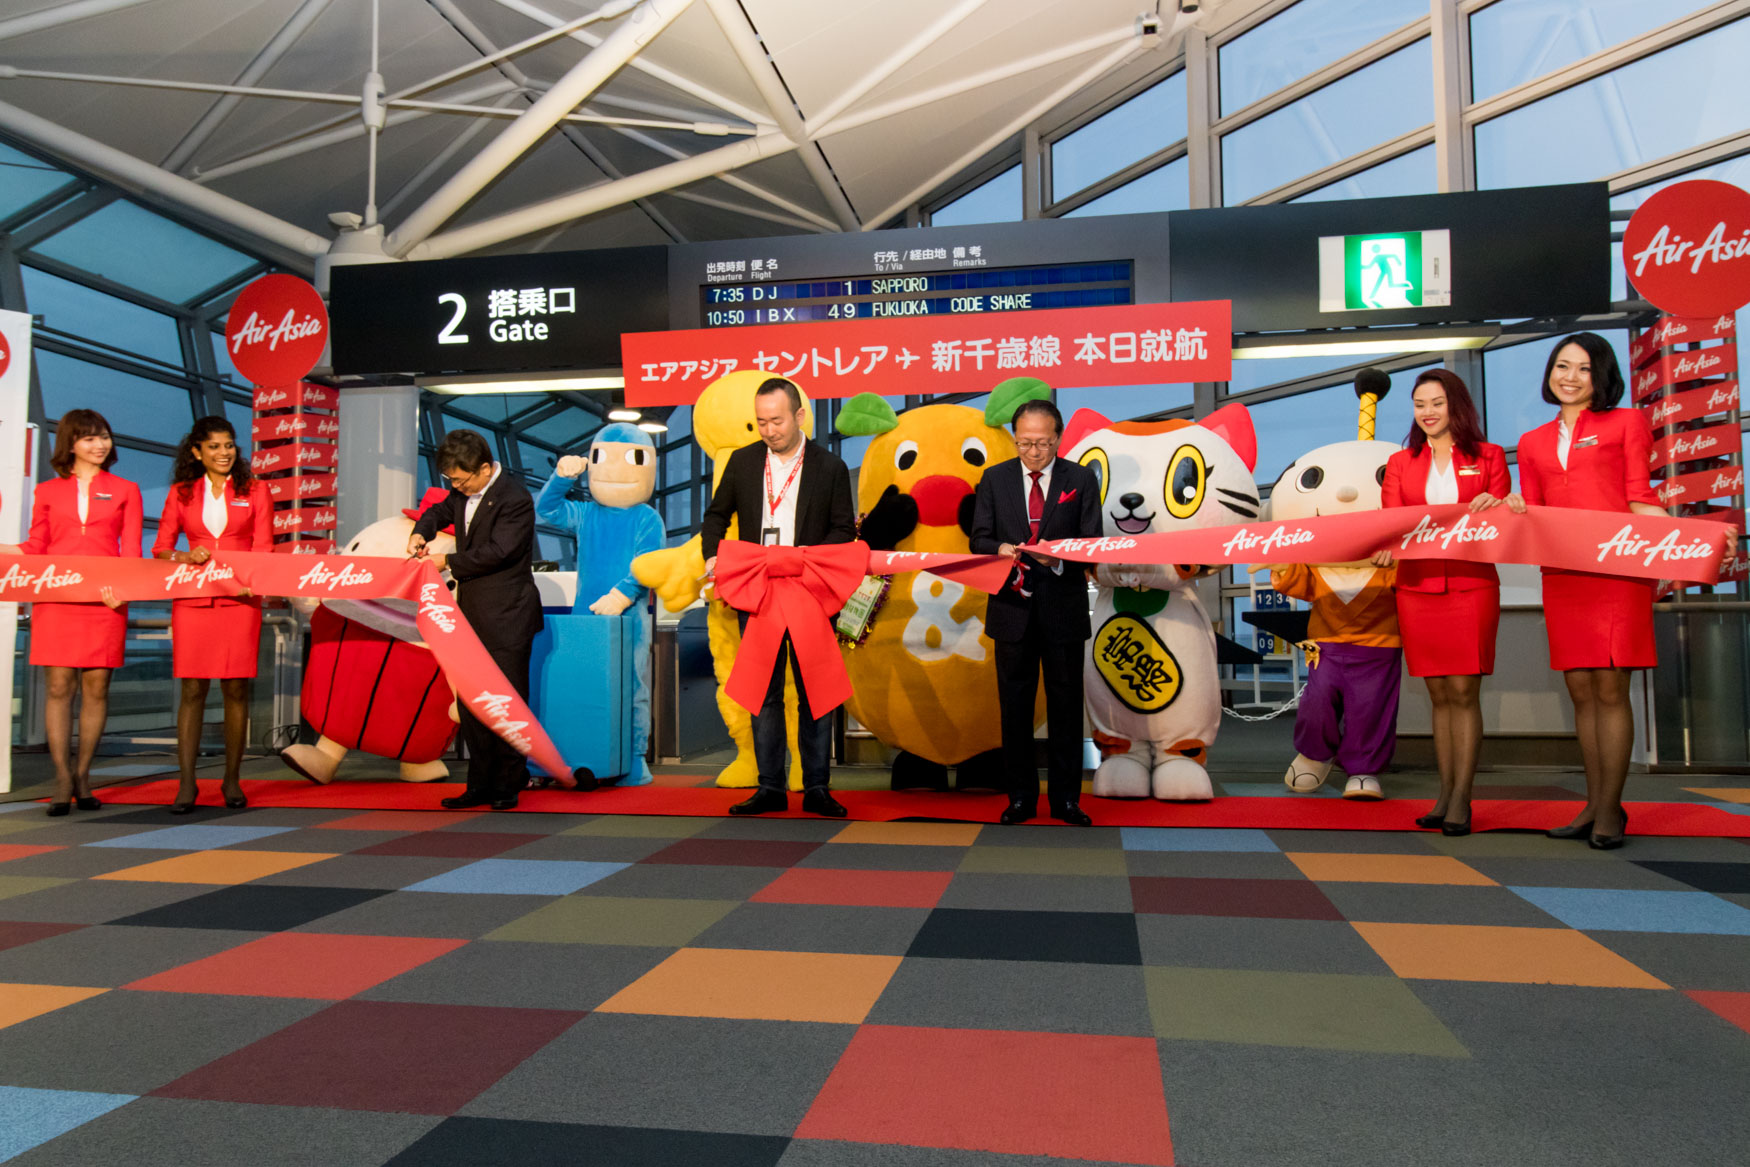 AirAsia Japan Inaugural Flight Ribbon Cut